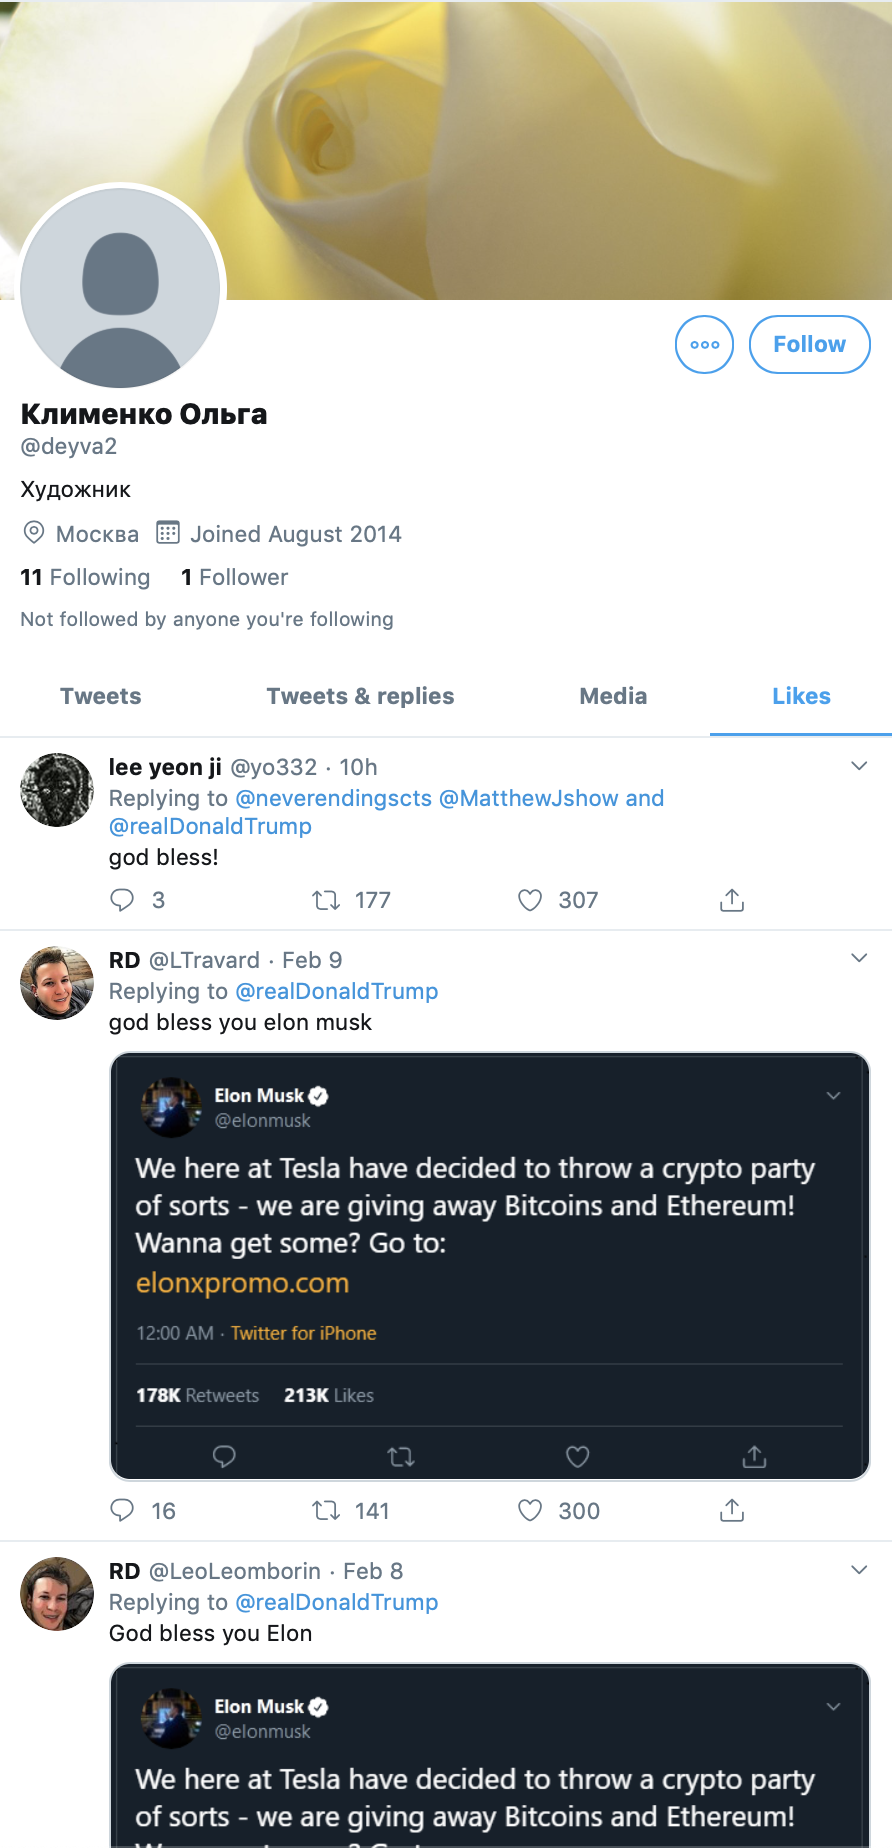 elon musk cryptocurrency giveaway